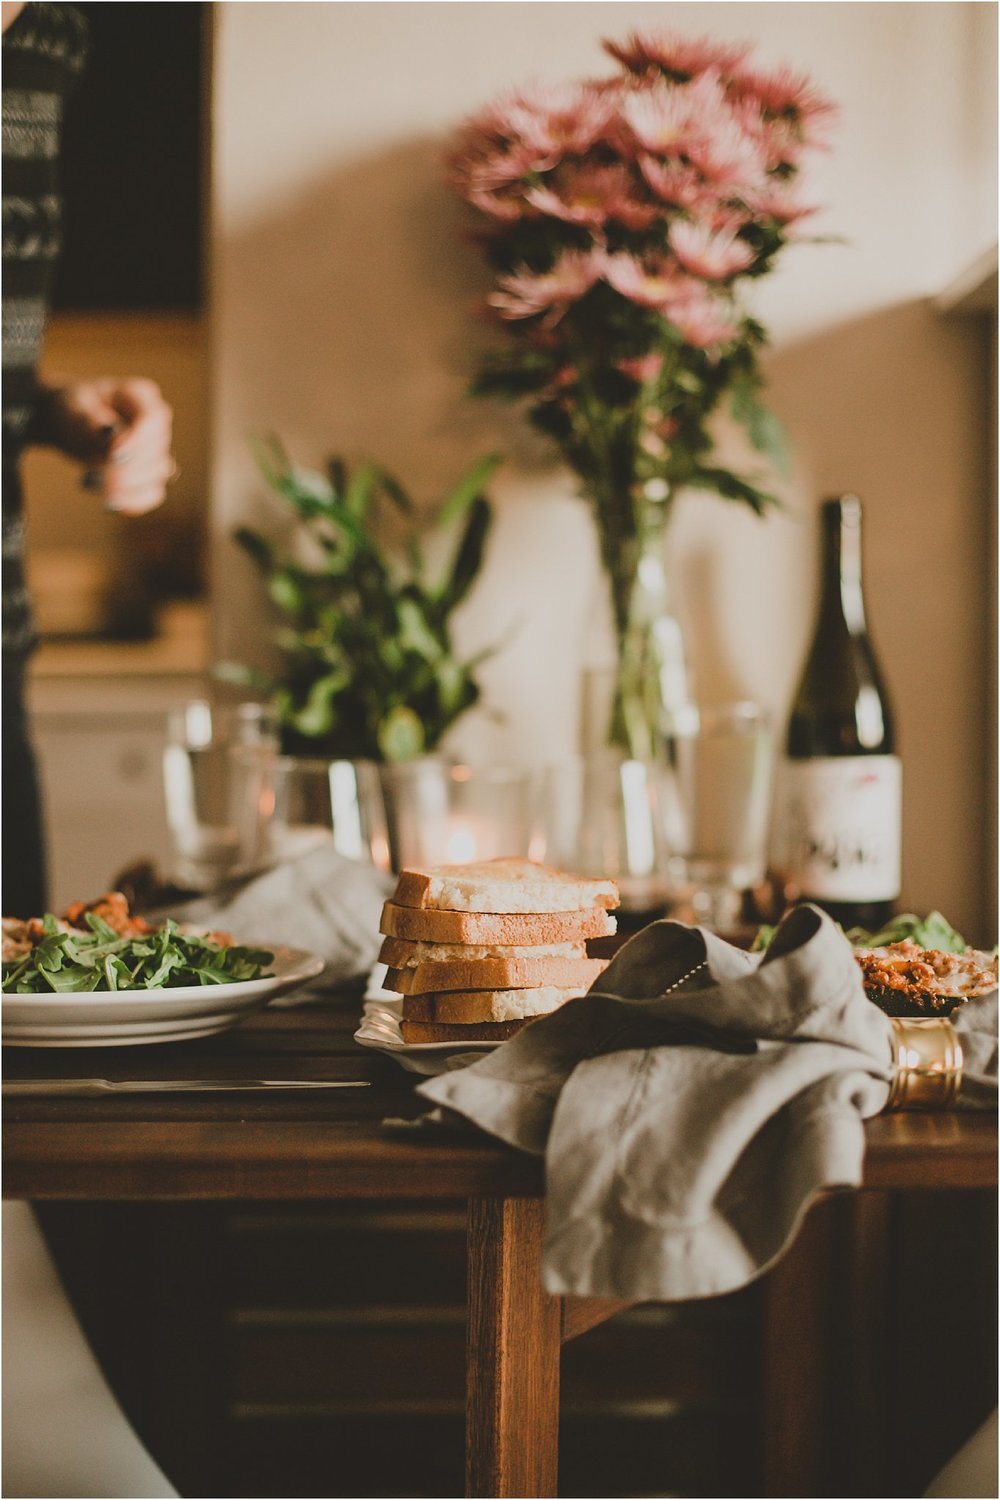 PattengalePhotography_StLouis_Missouri_Photographer_Romantic_Dinner_At_Home_ItalianStuffed_Zucchini_WeekendWear_DateNight_Newlyweds__0002.jpg